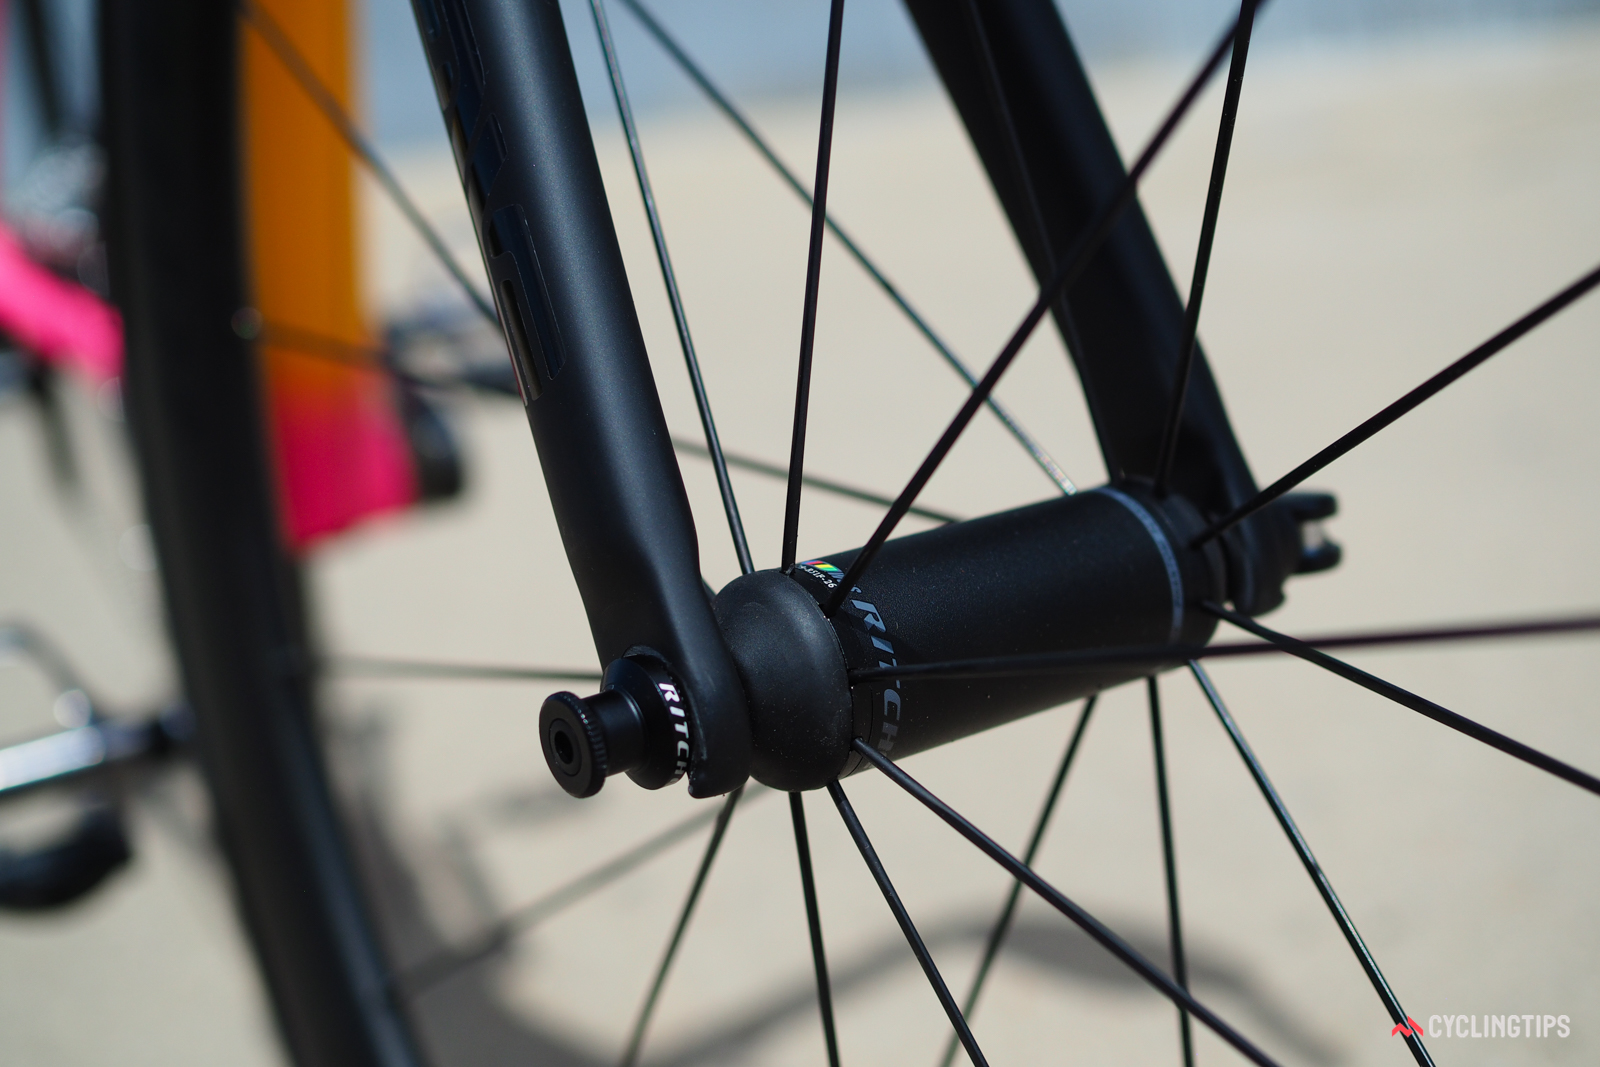 Ritchey's Phantom Flange hub design uses standard J-bend spokes but with the clean aesthetics of a straight-pull setup.